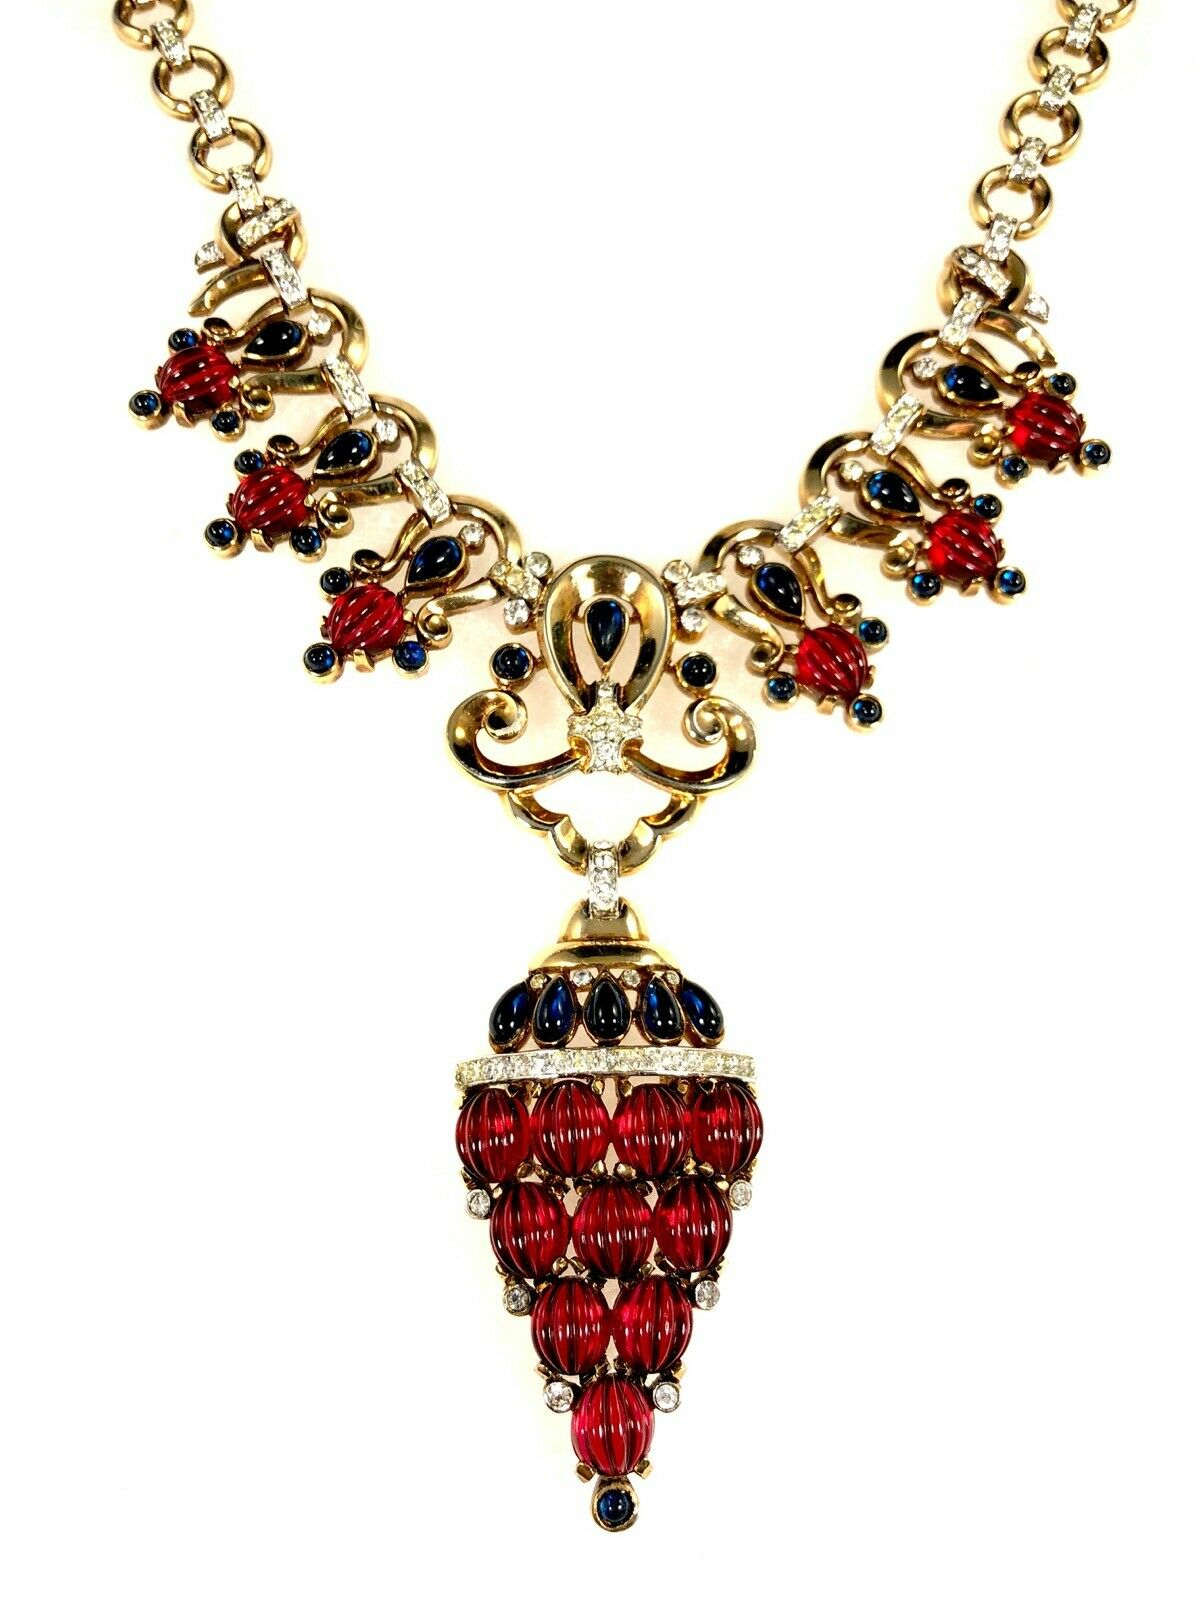 Scheherazade Necklace Pendant by TRIFARI dated 1949 for post: Collecting Vintage Vintage Trifari Jewelry